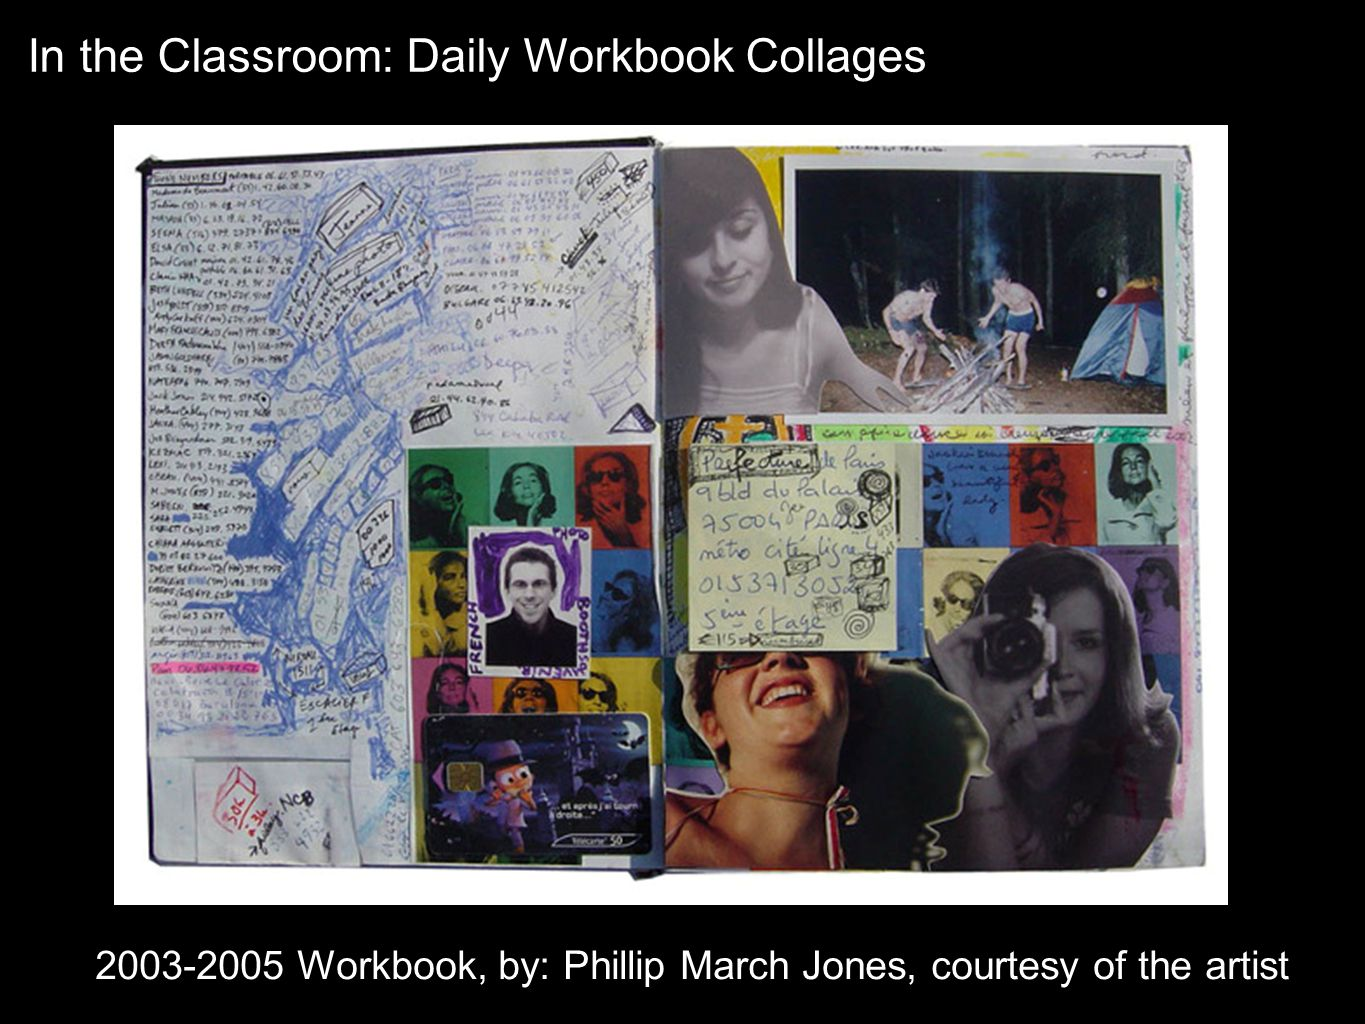 2003-2005 Workbook, by: Phillip March Jones, courtesy of the artist